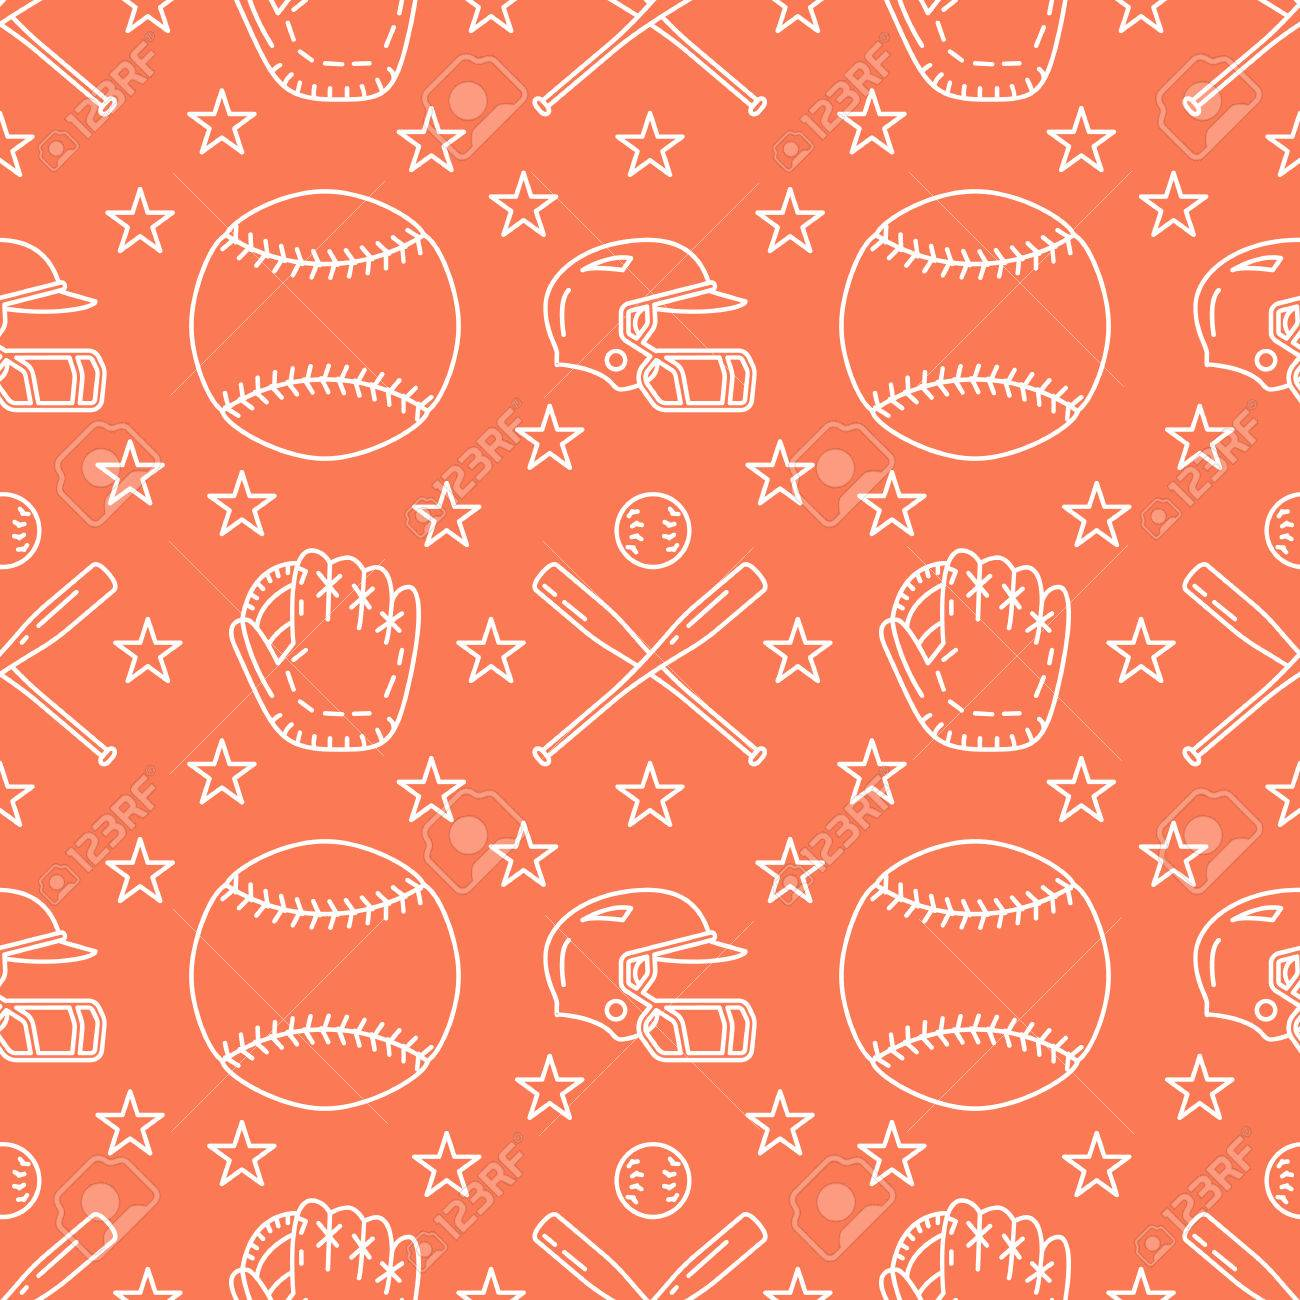 Baseball, softball sport game vector seamless pattern, orange background with line icons of balls, player, gloves, bat, helmet. Flat signs for championship, equipment store. - 78853256